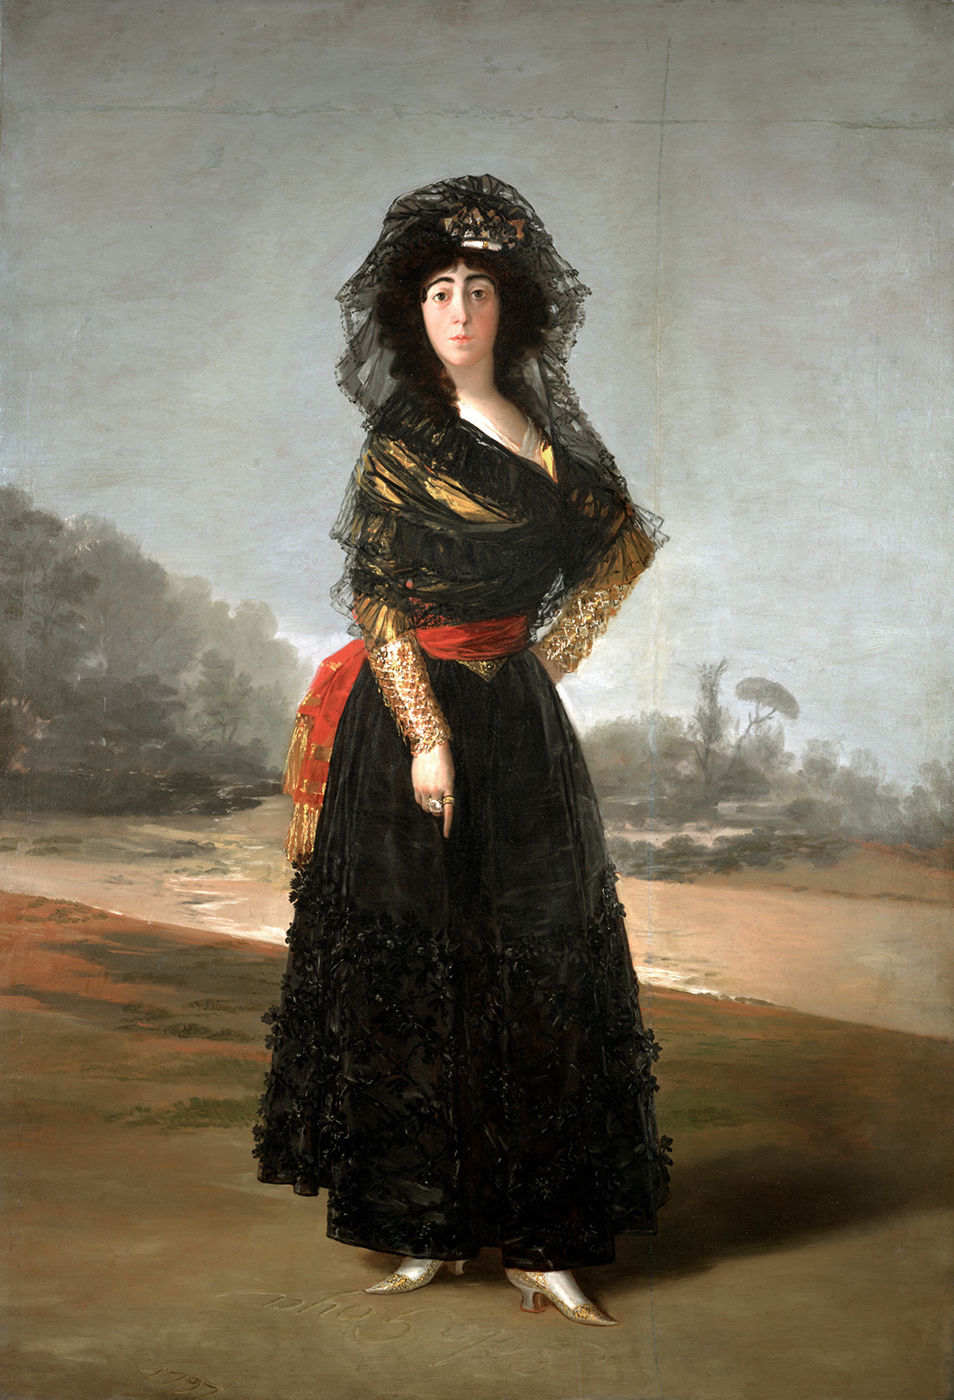 "'La duquesa de Alba"" - Goya, 1797 © Courtesy of The Hispanic Society of America, New York"